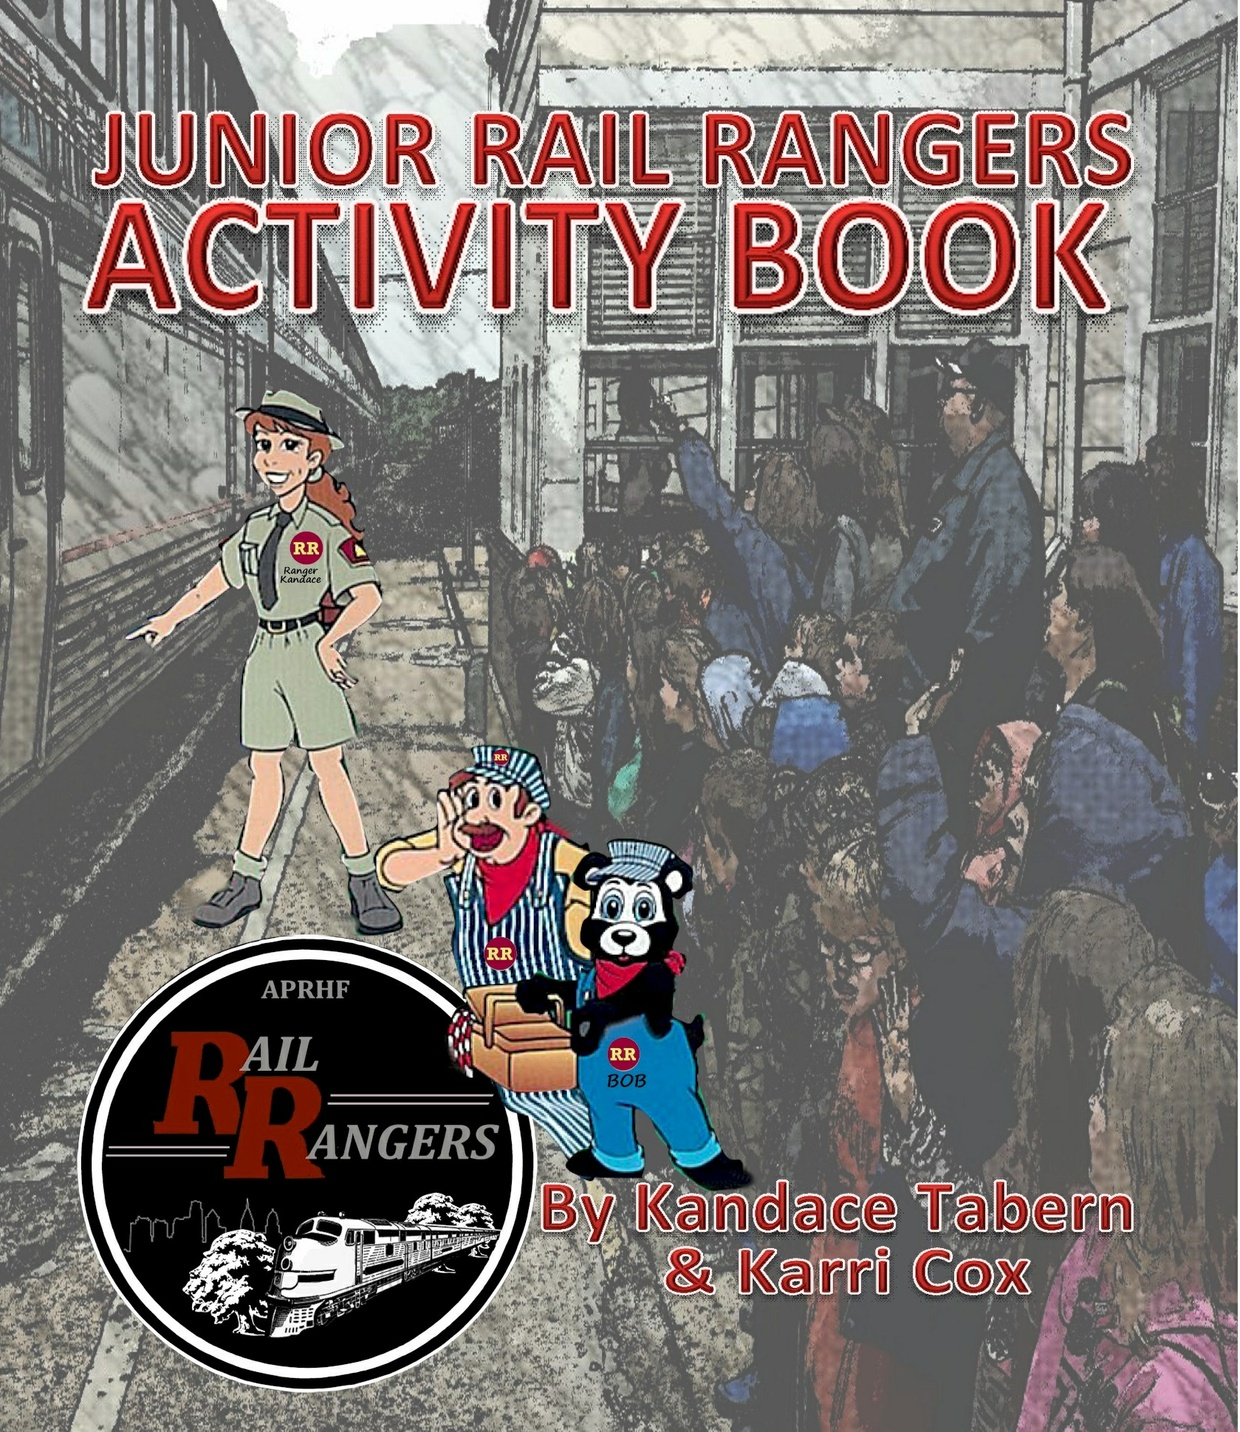 Junior Rail Rangers Activity Book (Activity Book ONLY)